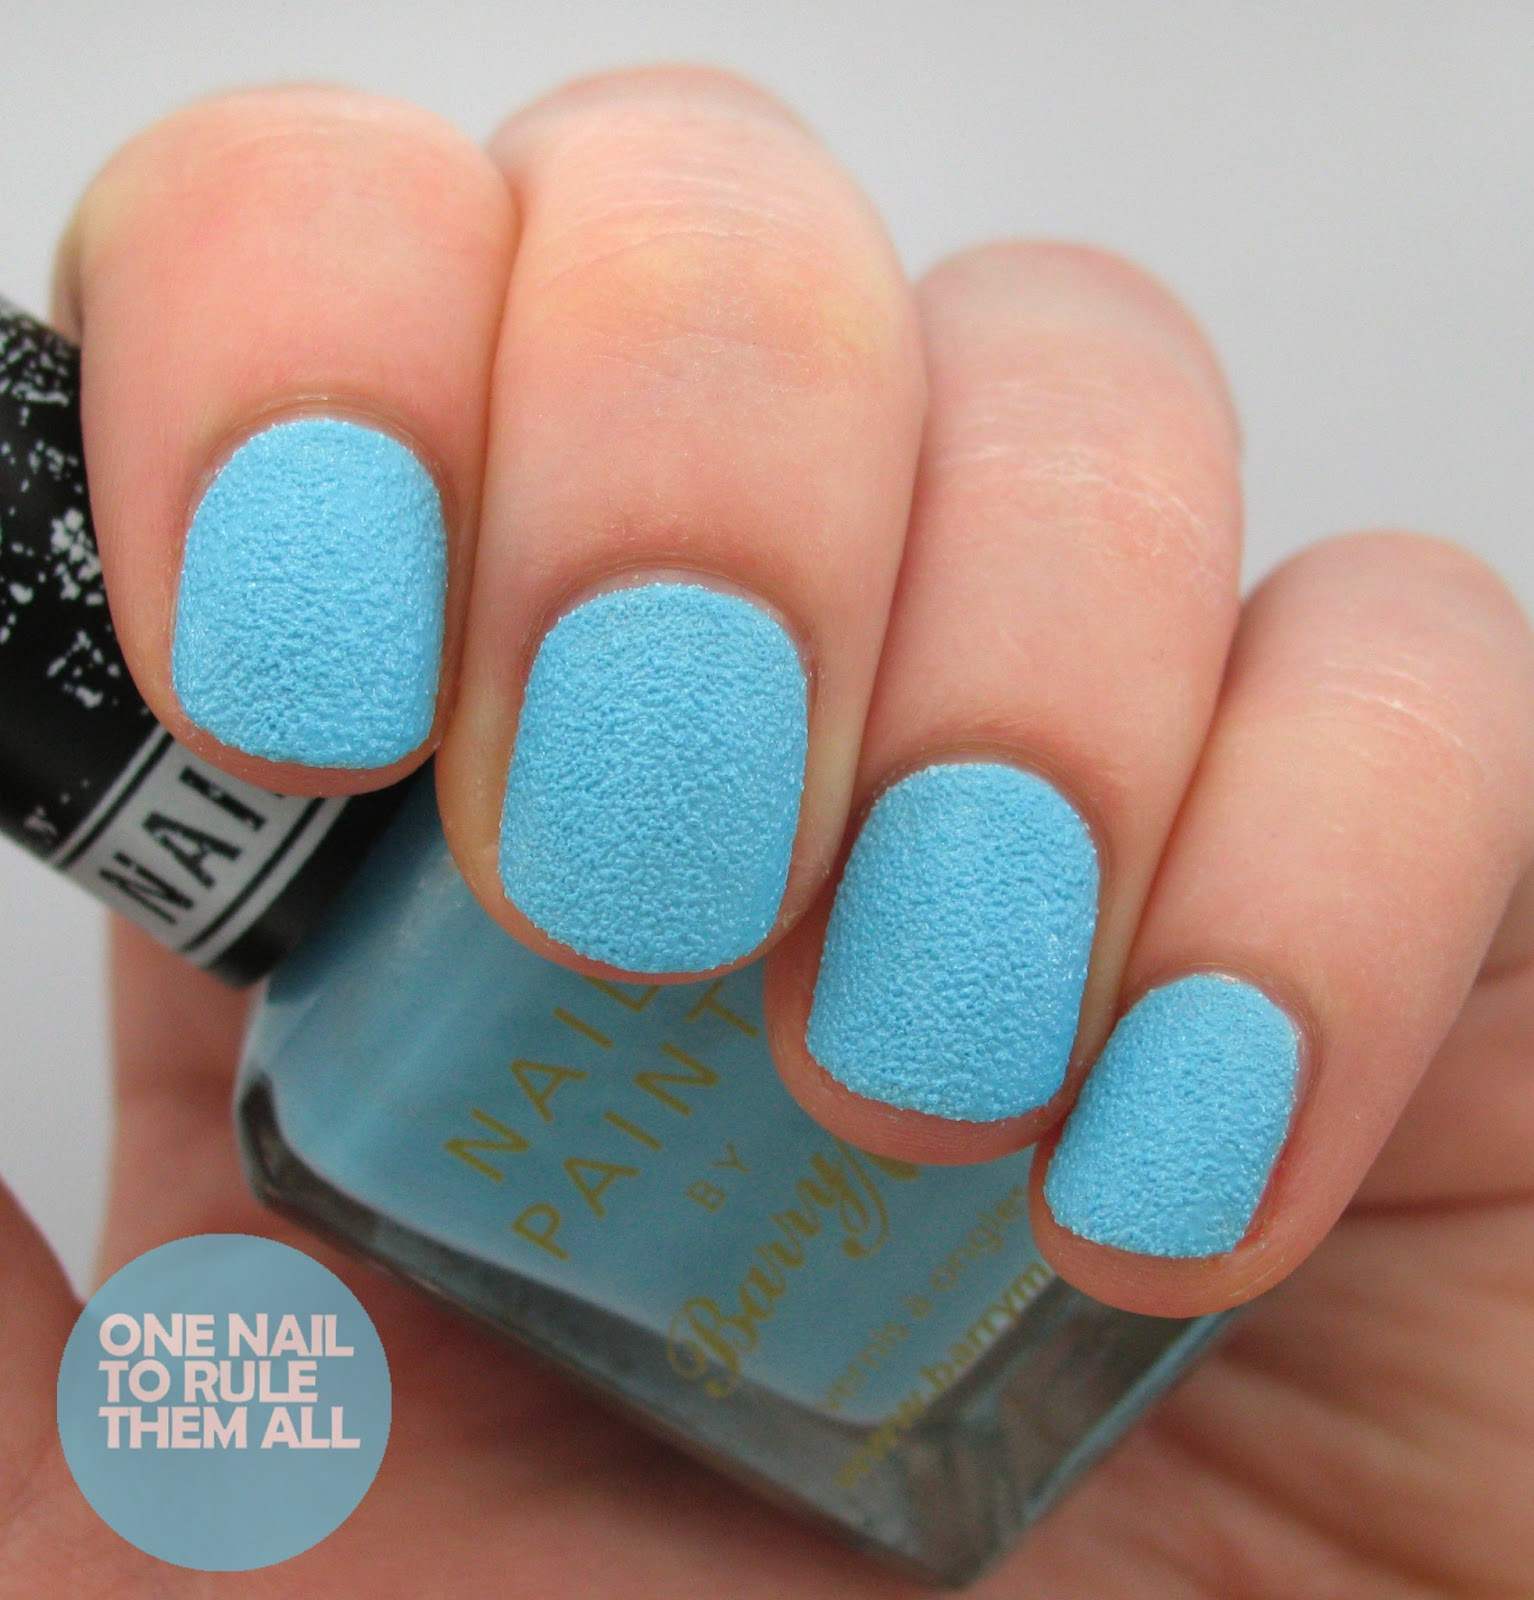 One Nail To Rule Them All Barry M Nail Art Pens Review: One Nail To Rule Them All: New Barry M Textured Nail